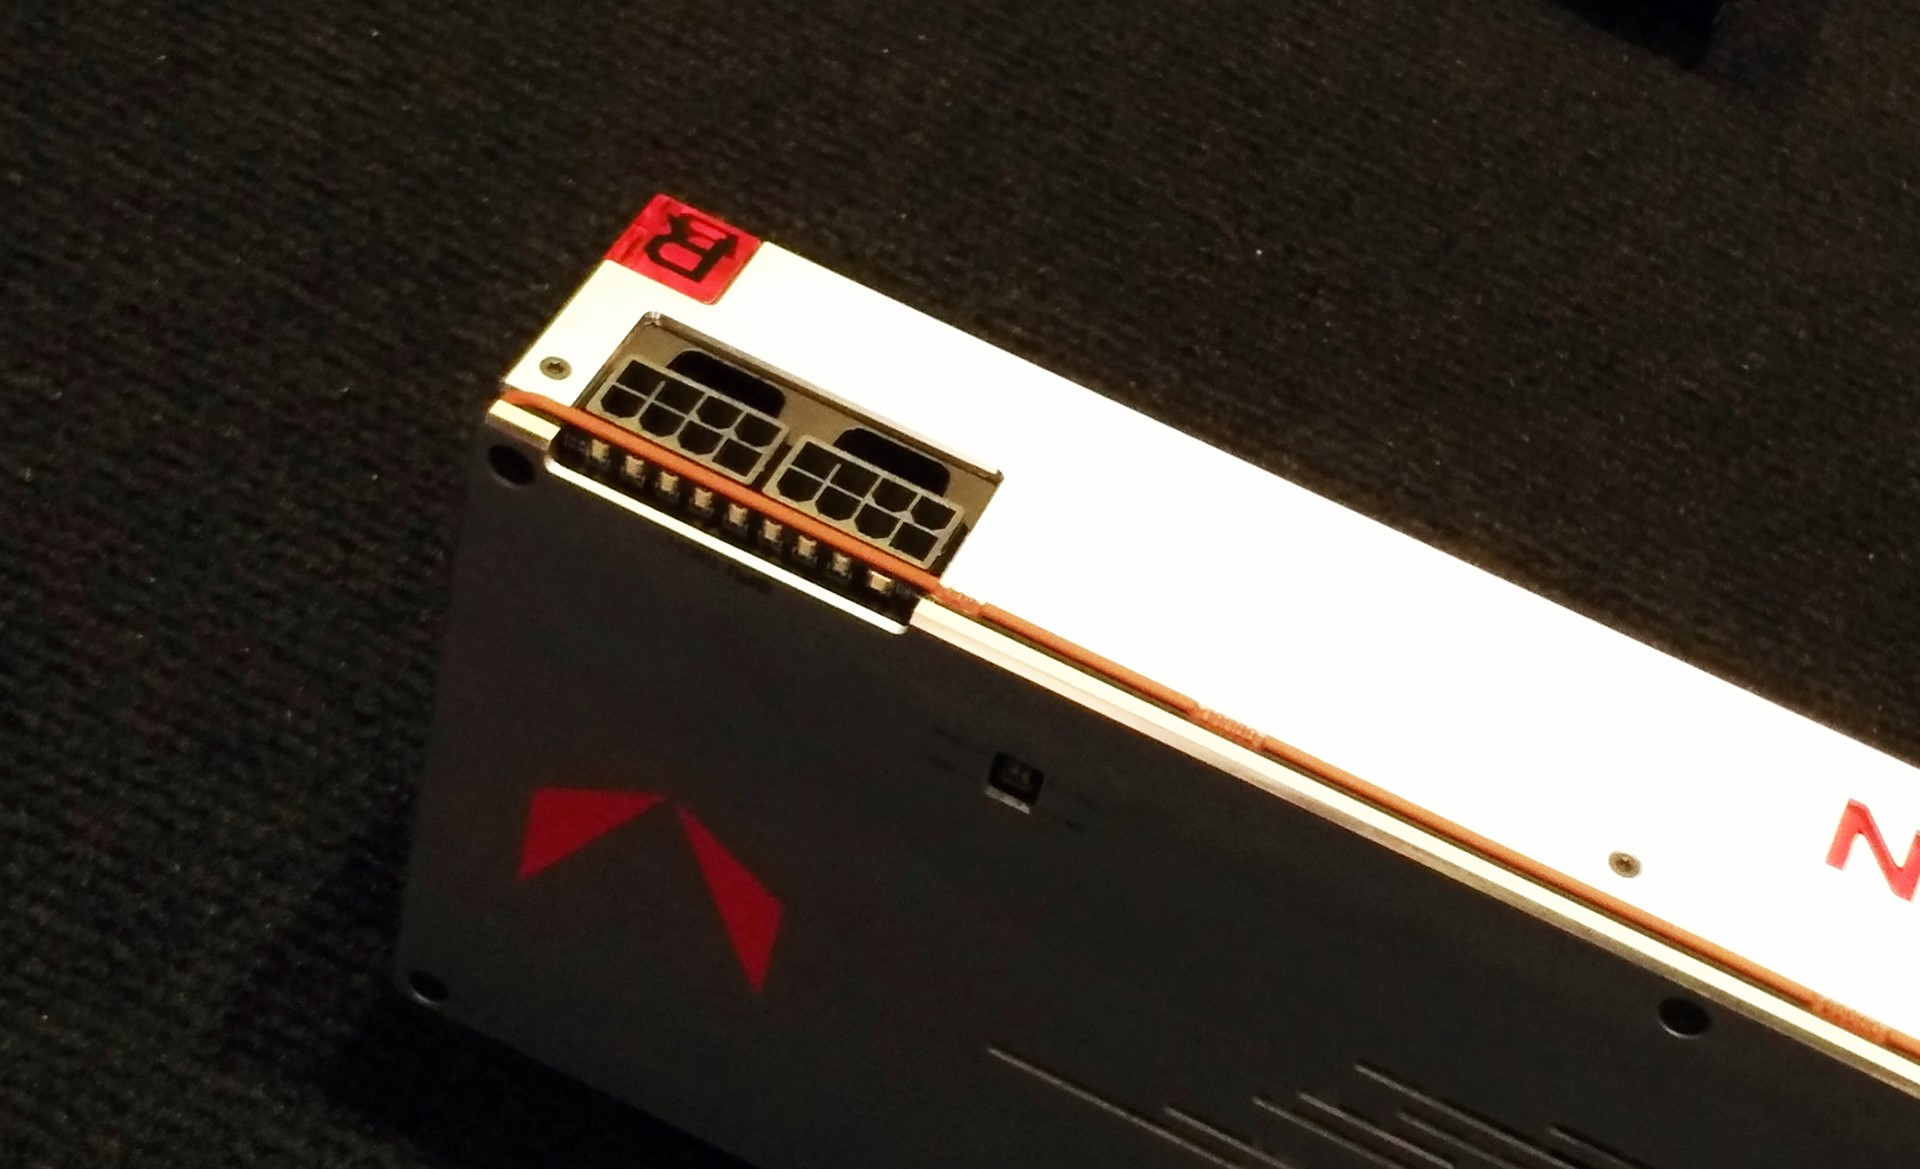 AMD Radeon RX Vega Air And Liquid Cooled Edition Graphics Cards Break Cover At SIGGRAPH